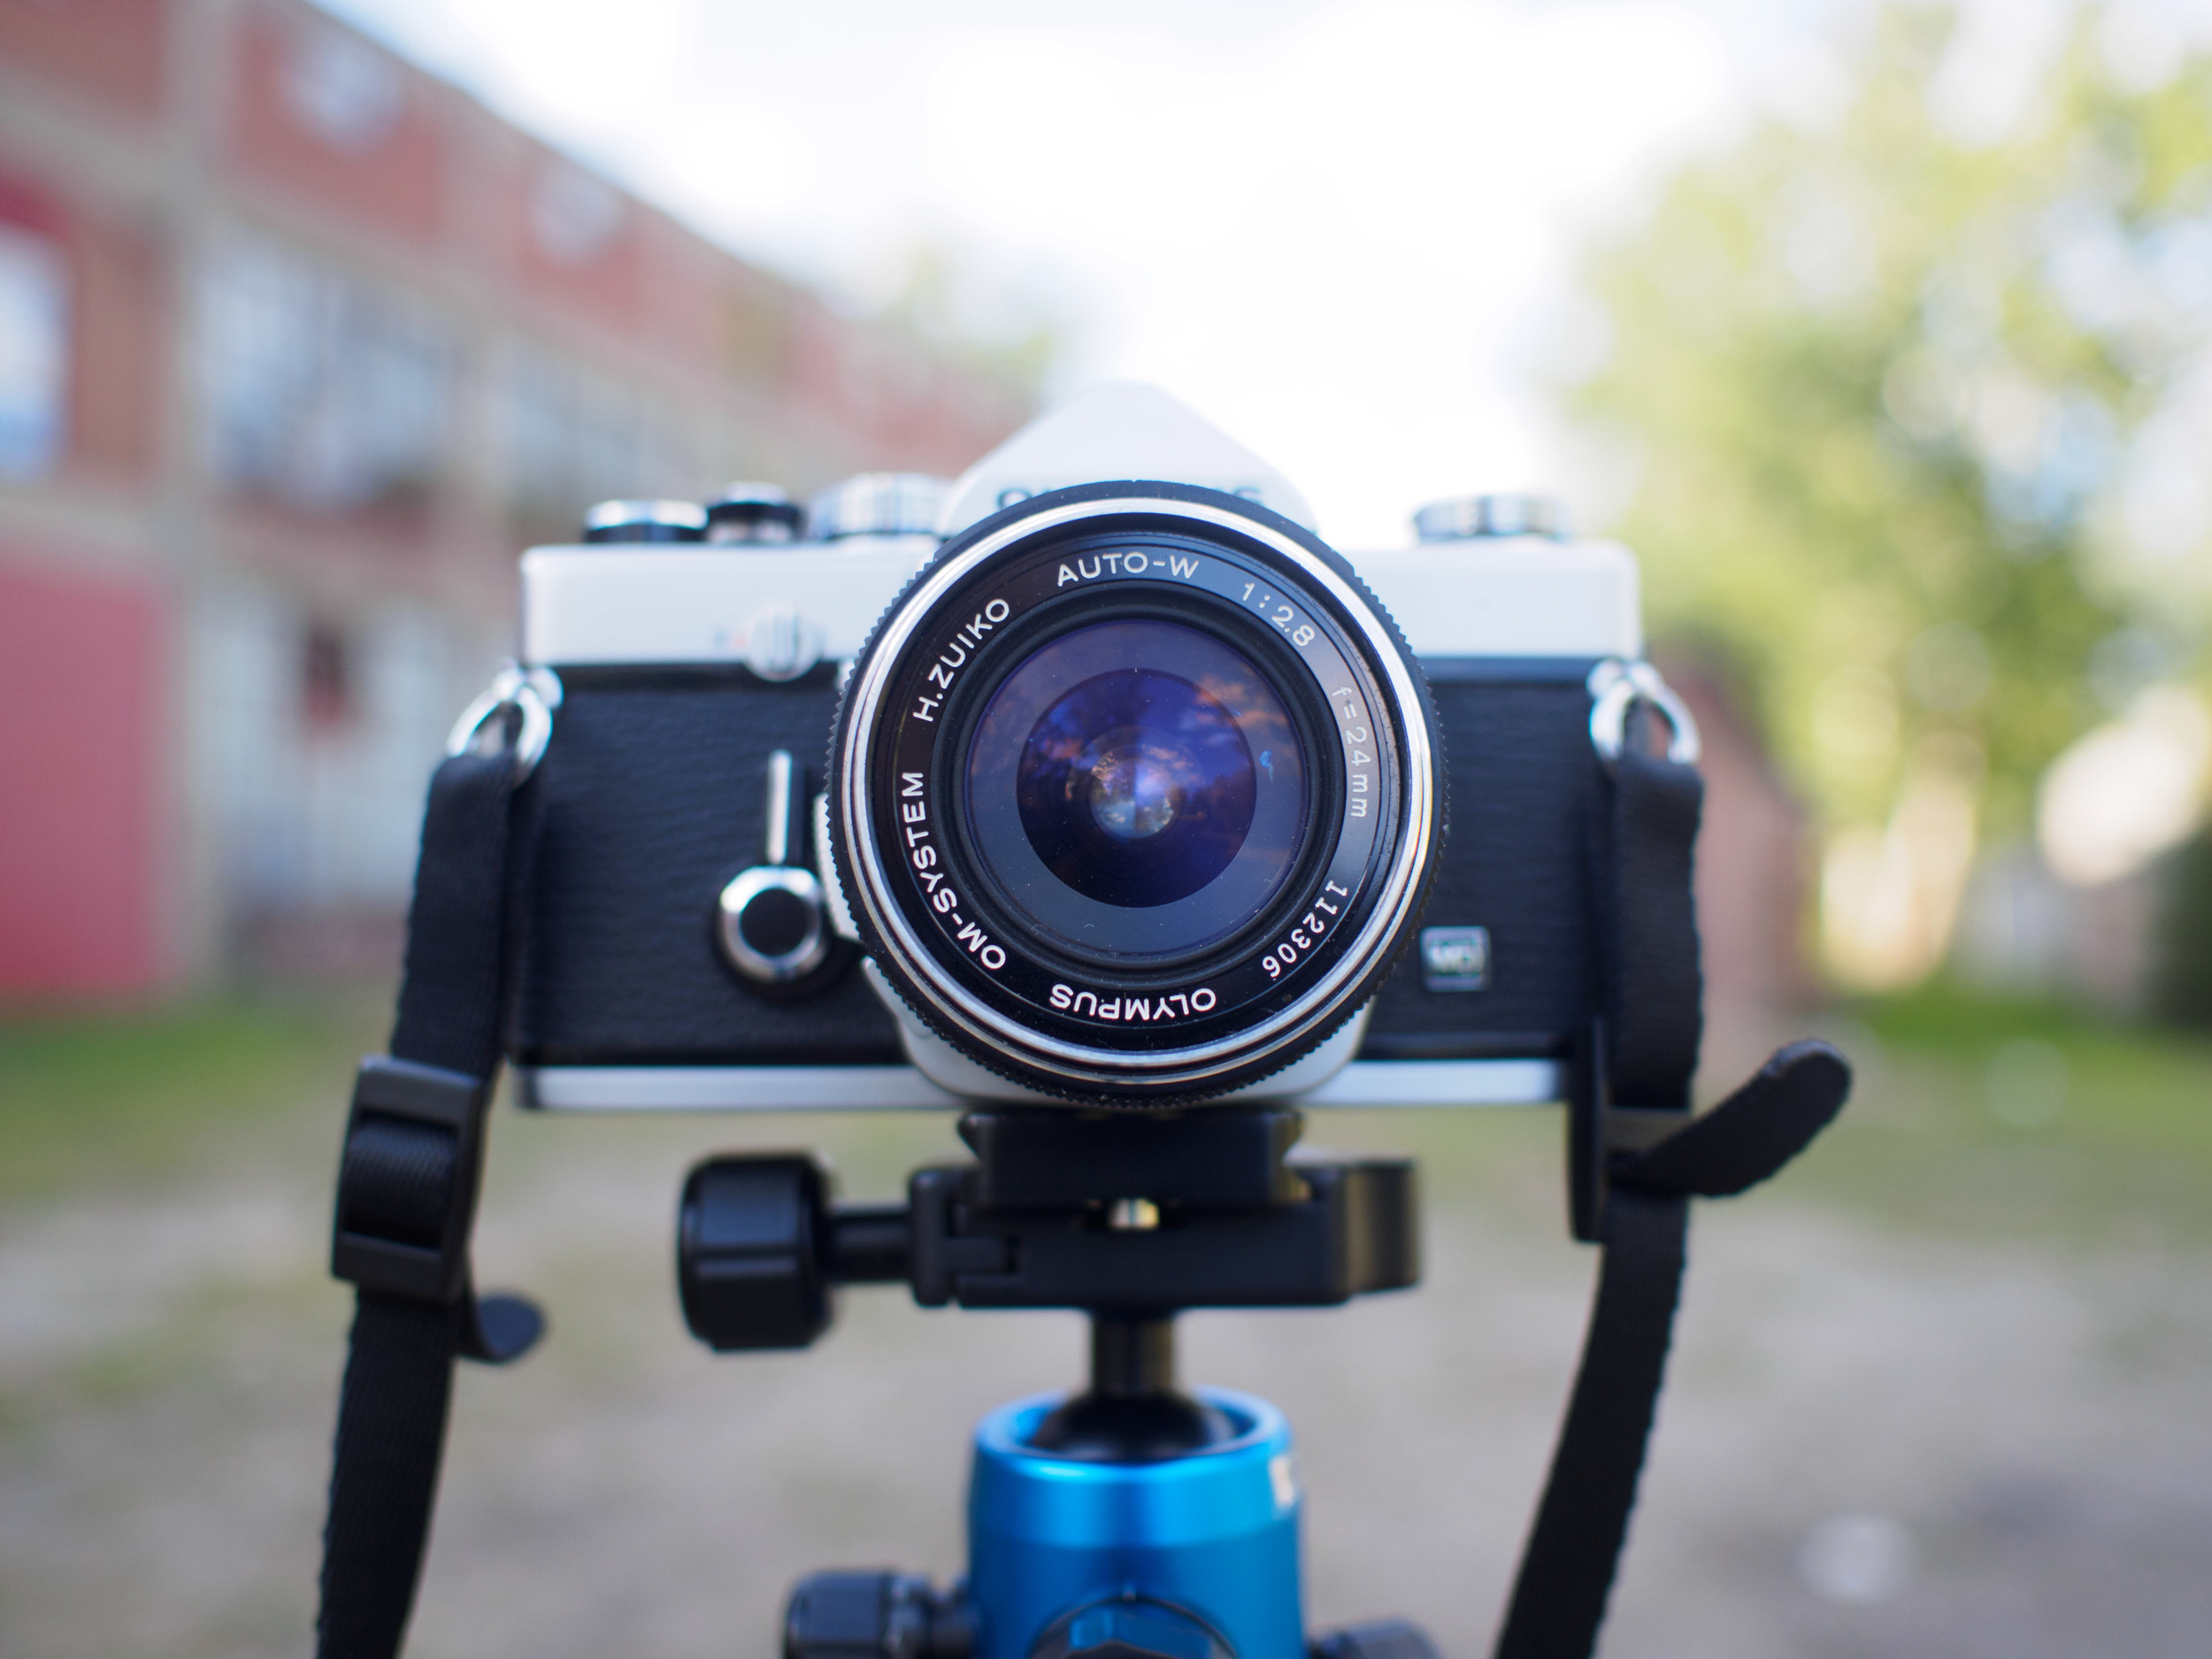 Taken with the mZuiko 17mm f/1.8 at f/2 to match the aperture of the 12mm.